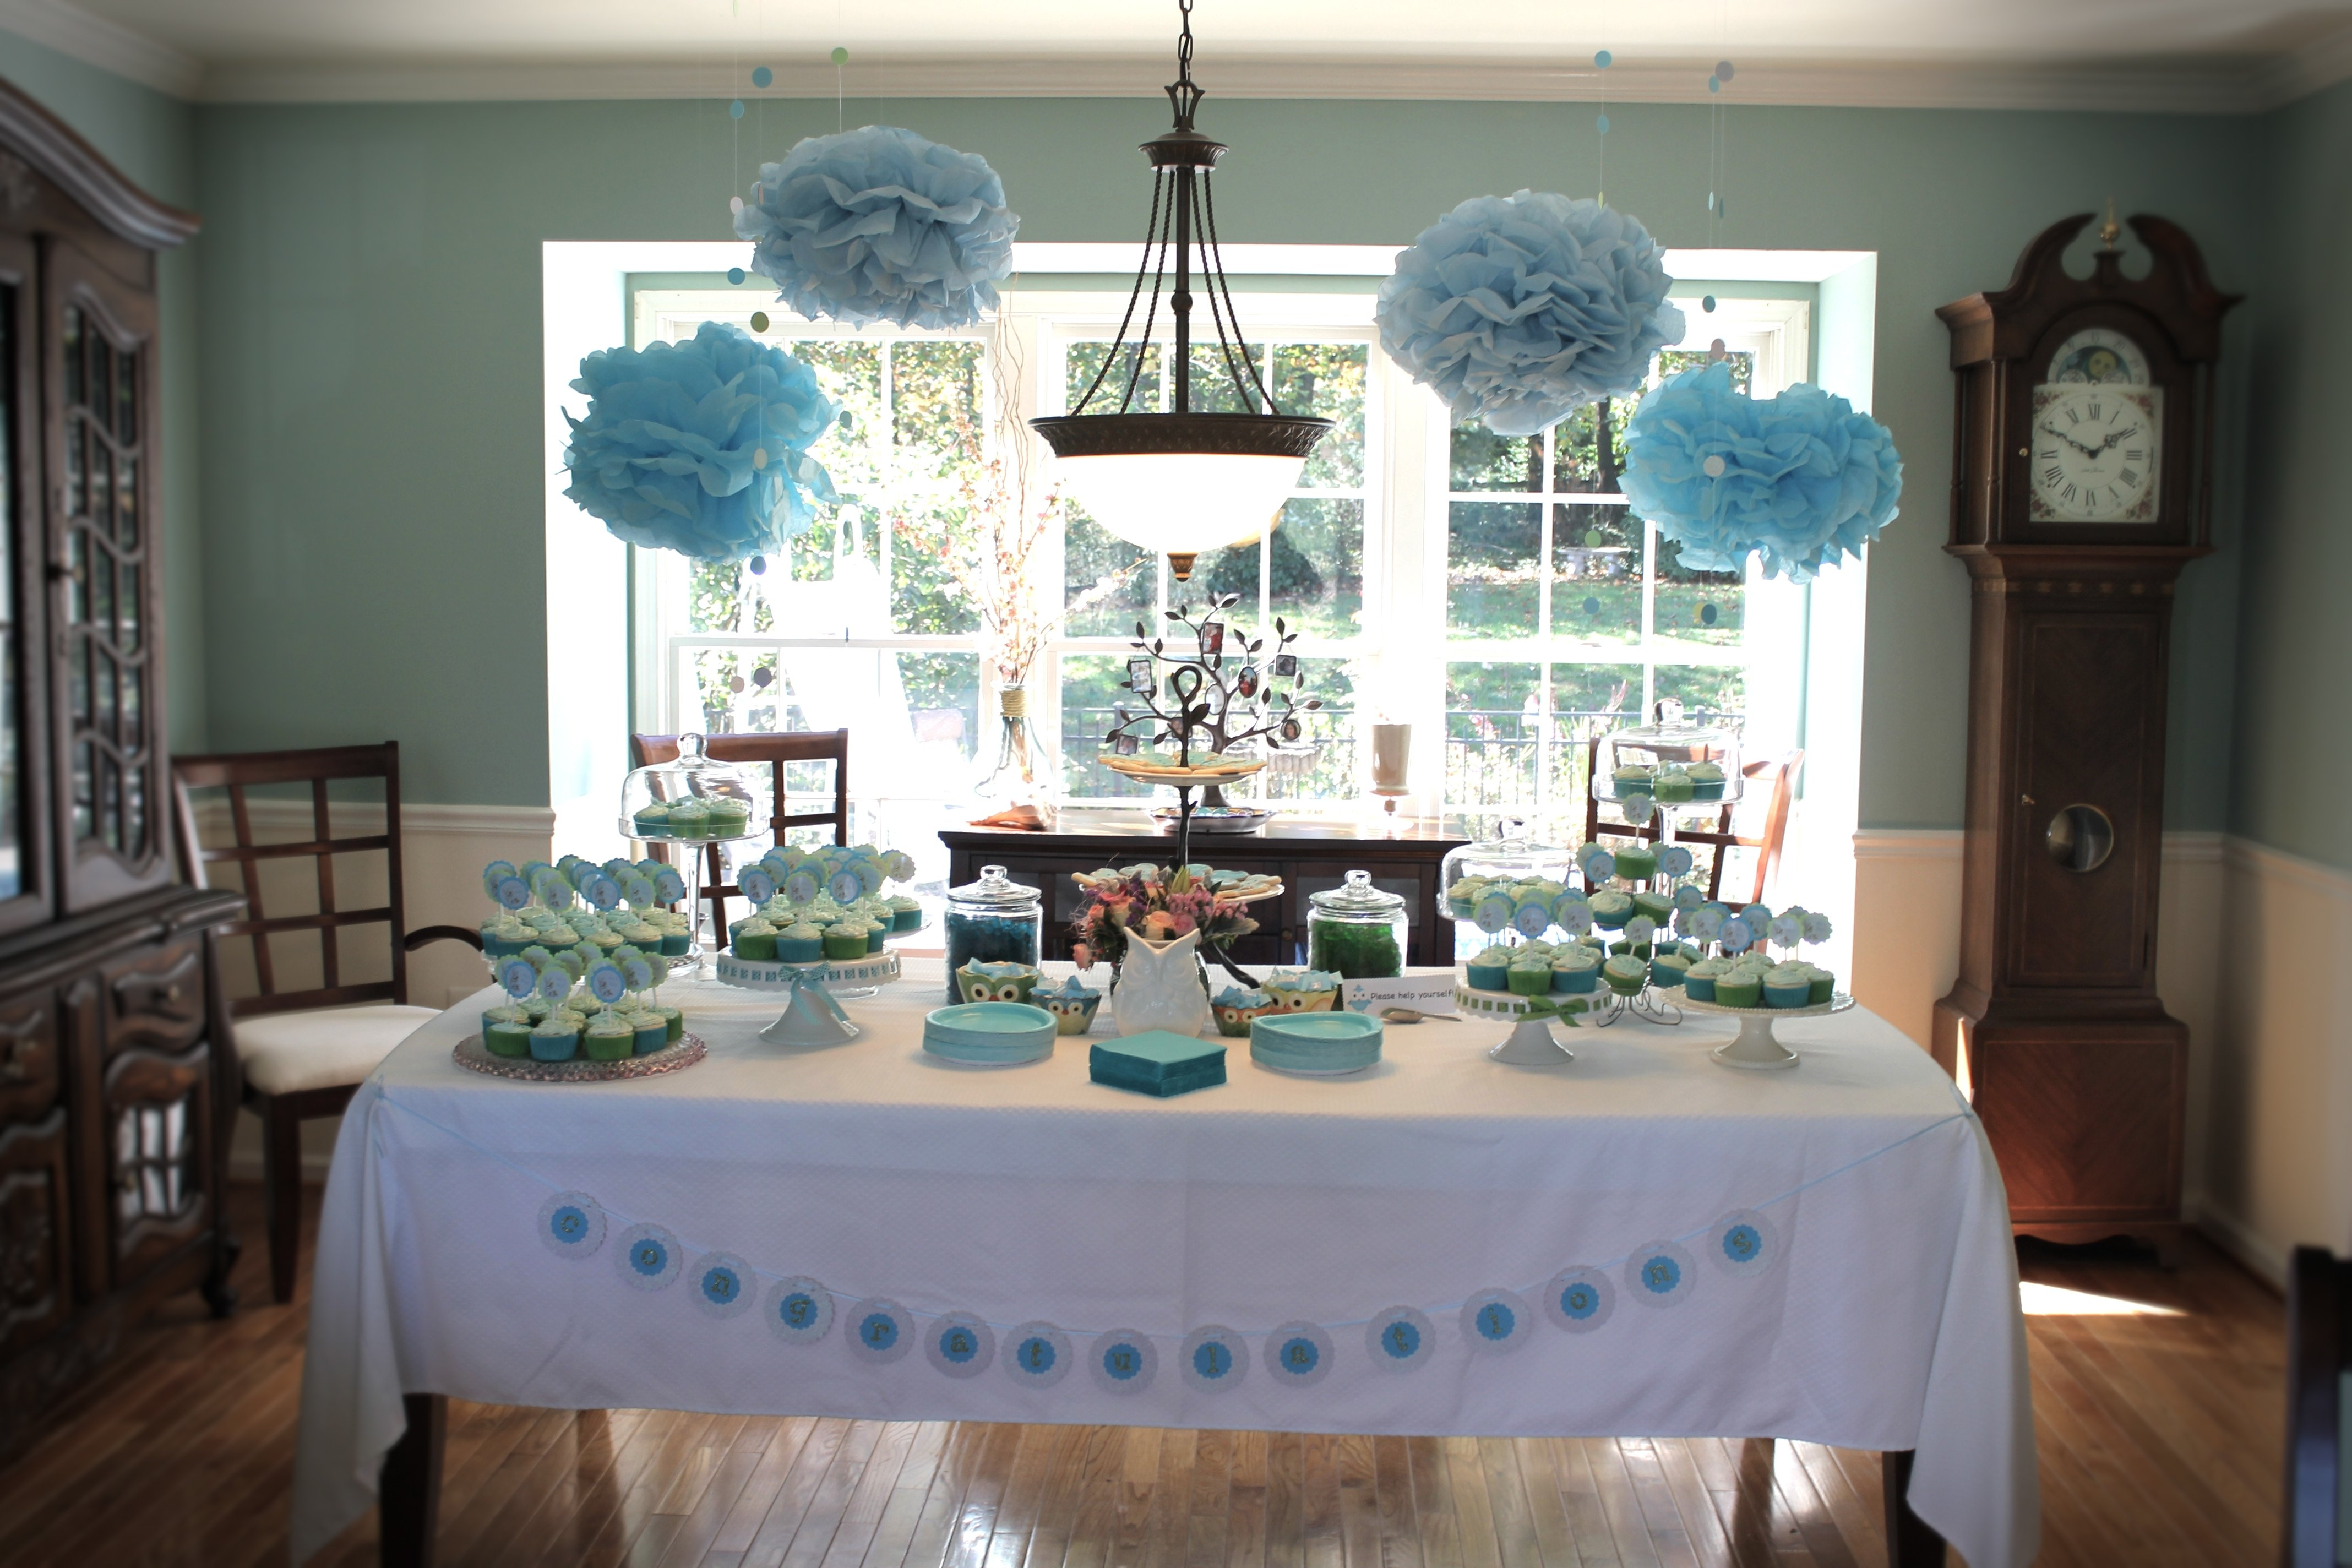 10 Unique Baby Shower Decoration Ideas For Boy photo baby shower table centerpiece image 2021